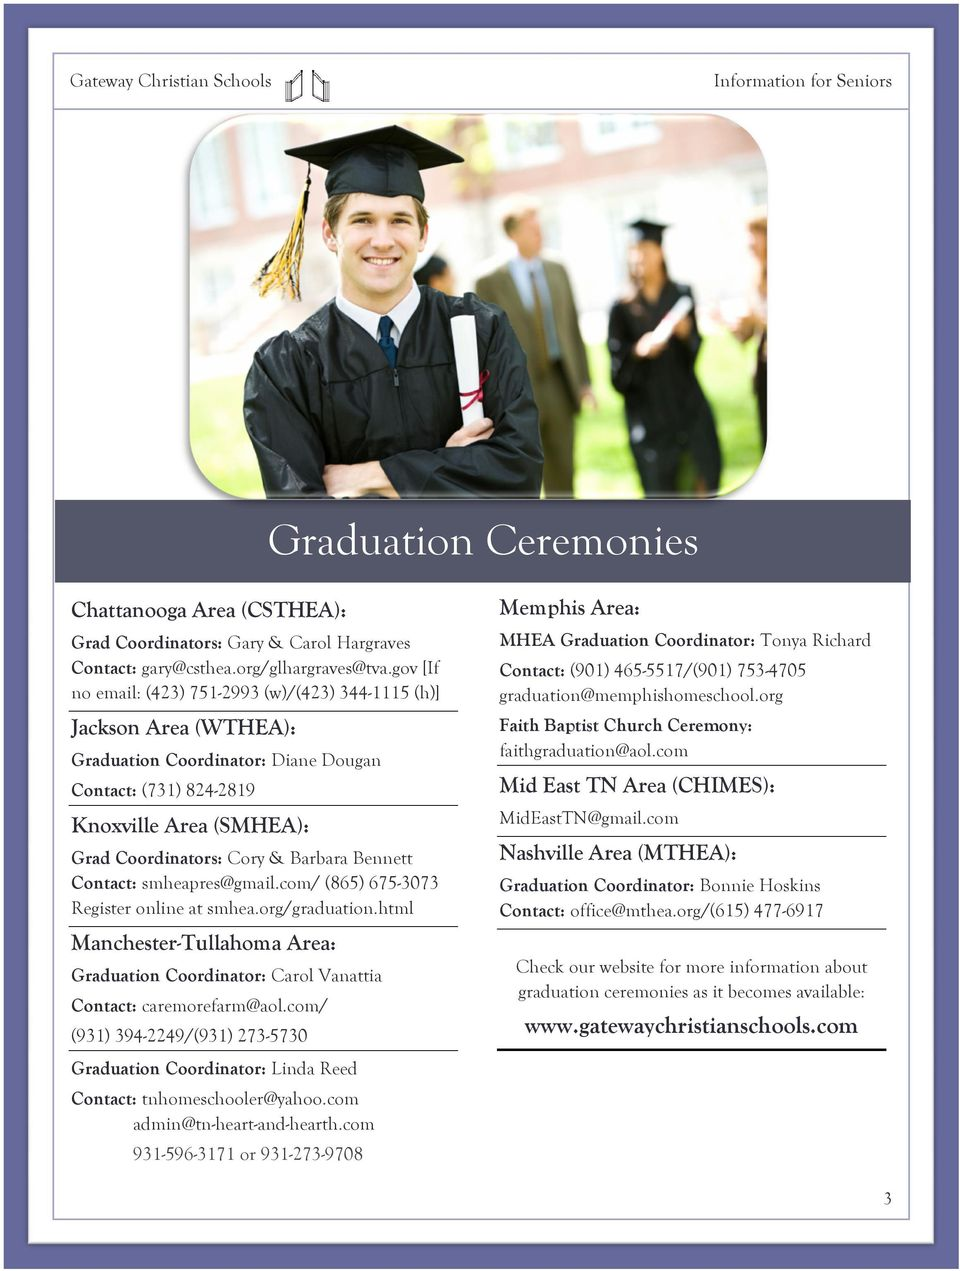 com Graduation Coordinator: Diane Dougan Contact: (901) 465-5517/(901) 753-4705 graduation@memphishomeschool.